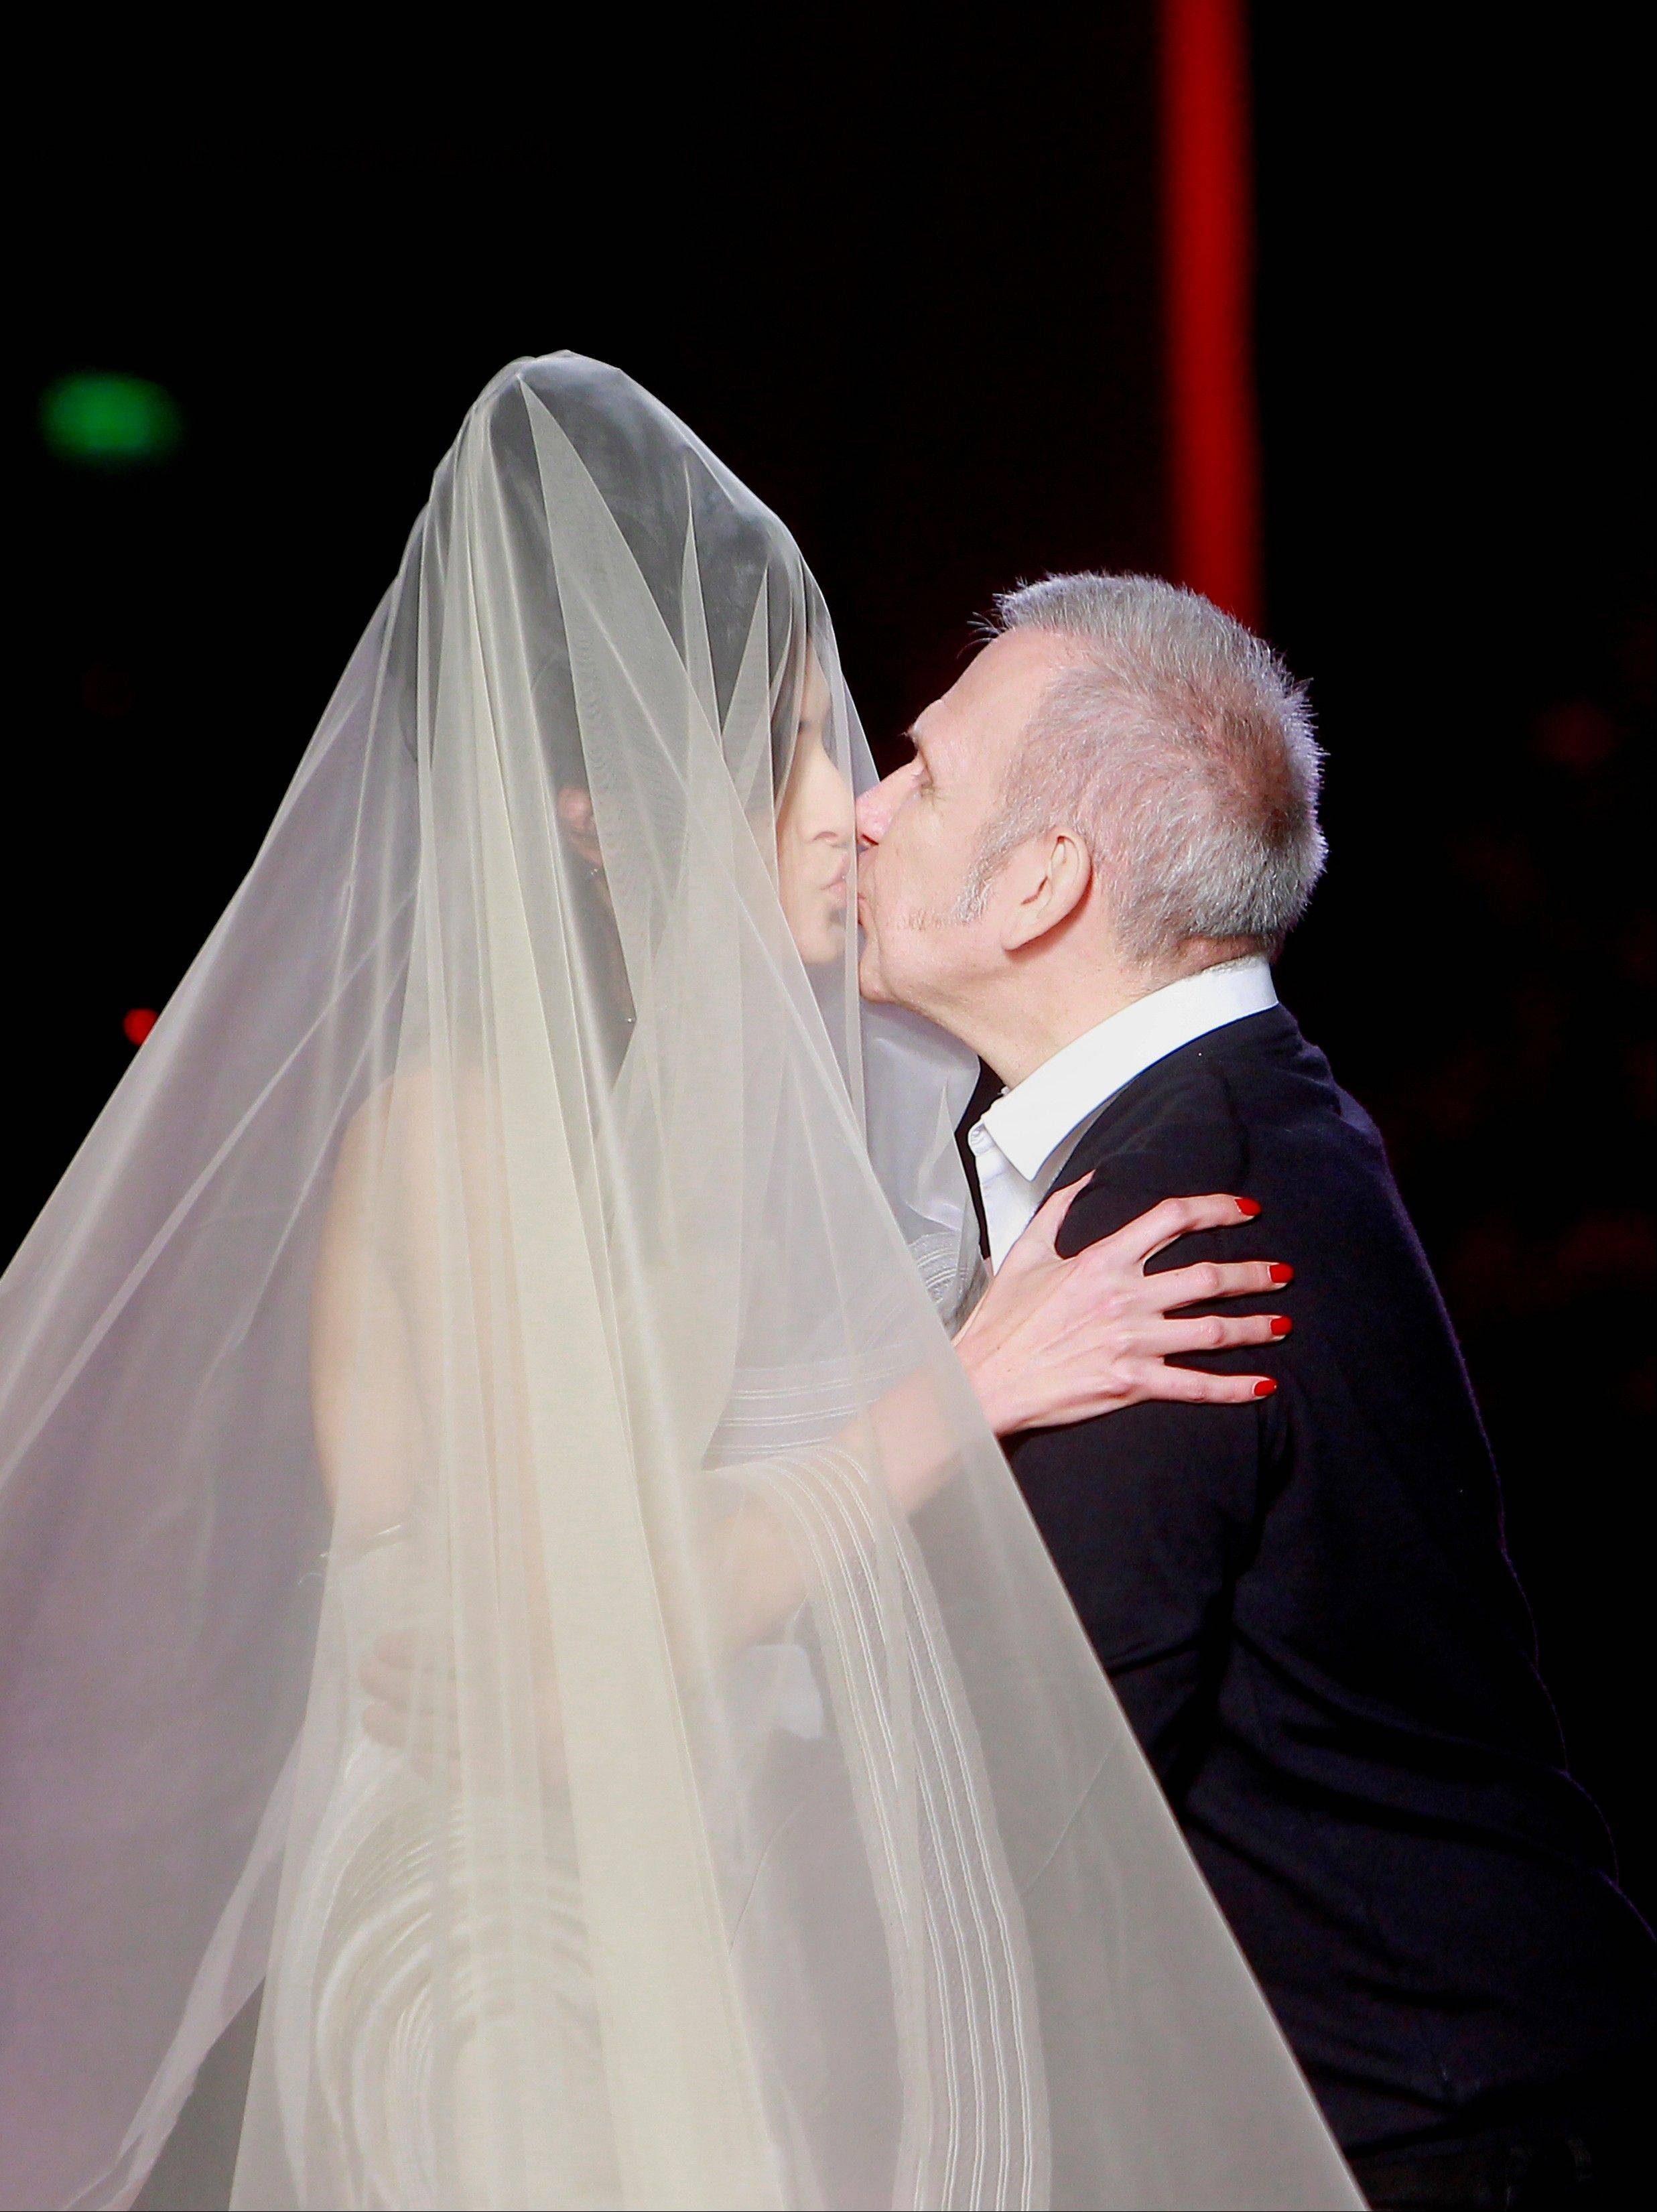 French Fashion designer Jean Paul Gaultier kisses a model after the presentation for Women's Spring Summer 2012 Haute Couture fashion collection presented in Paris, Wednesday, Jan. 25 2012.